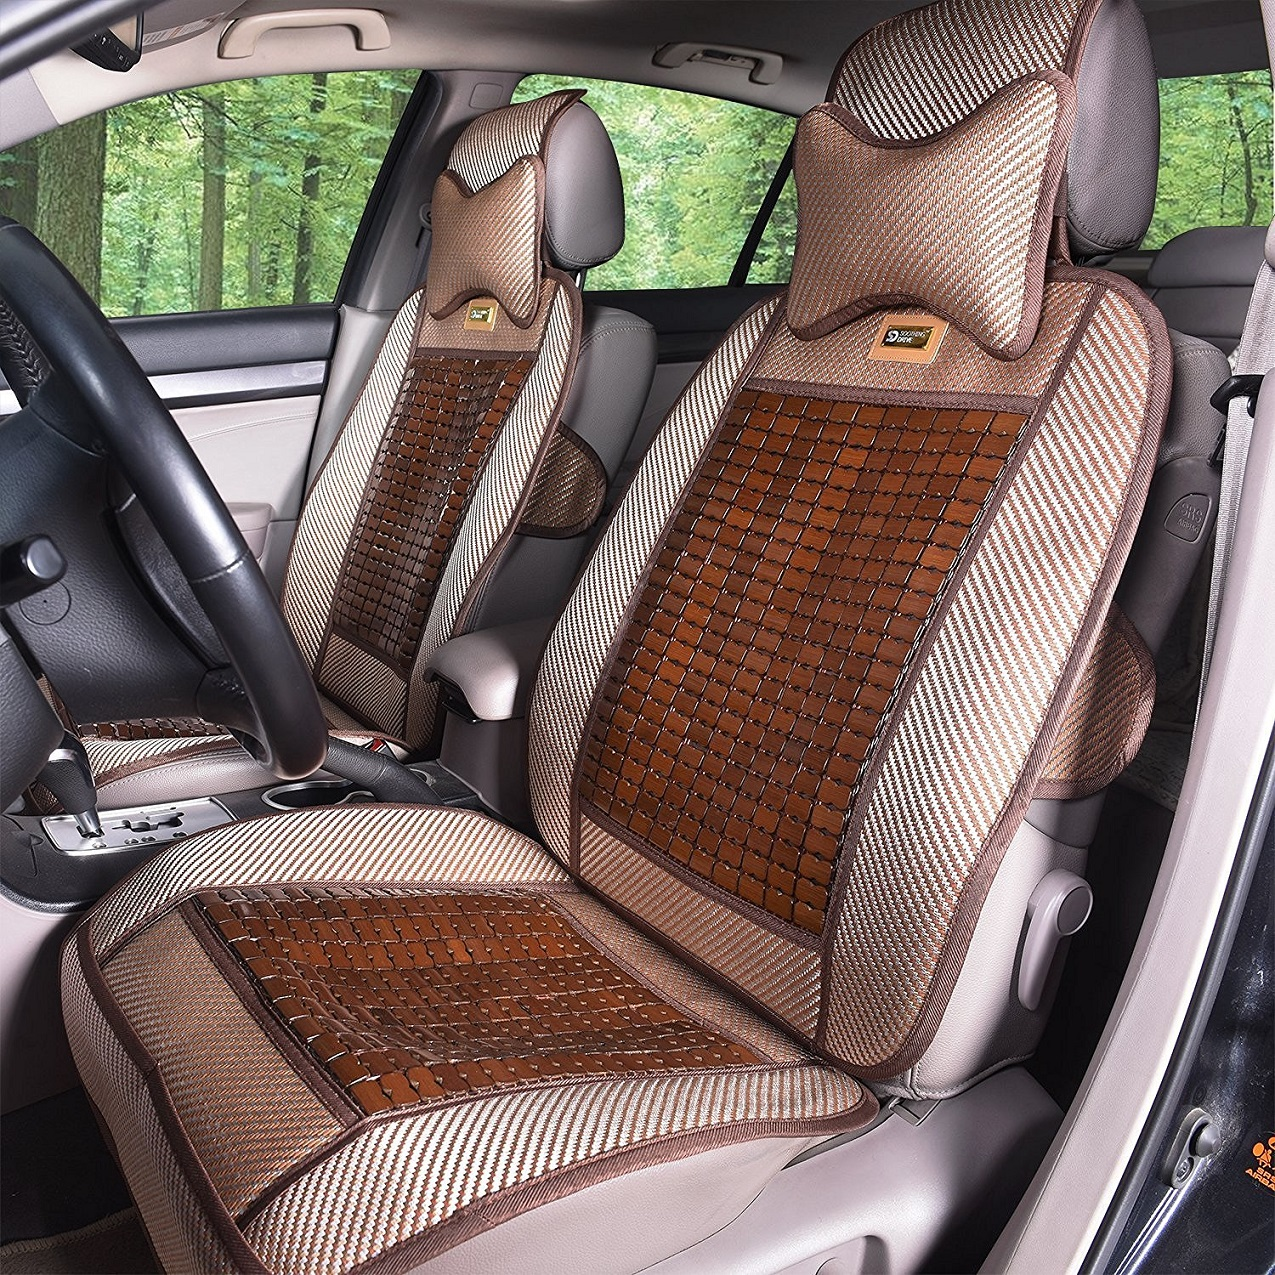 Qbedding Soothing Drive Cooling Series Universal Fit Automotive Seat Covers Image